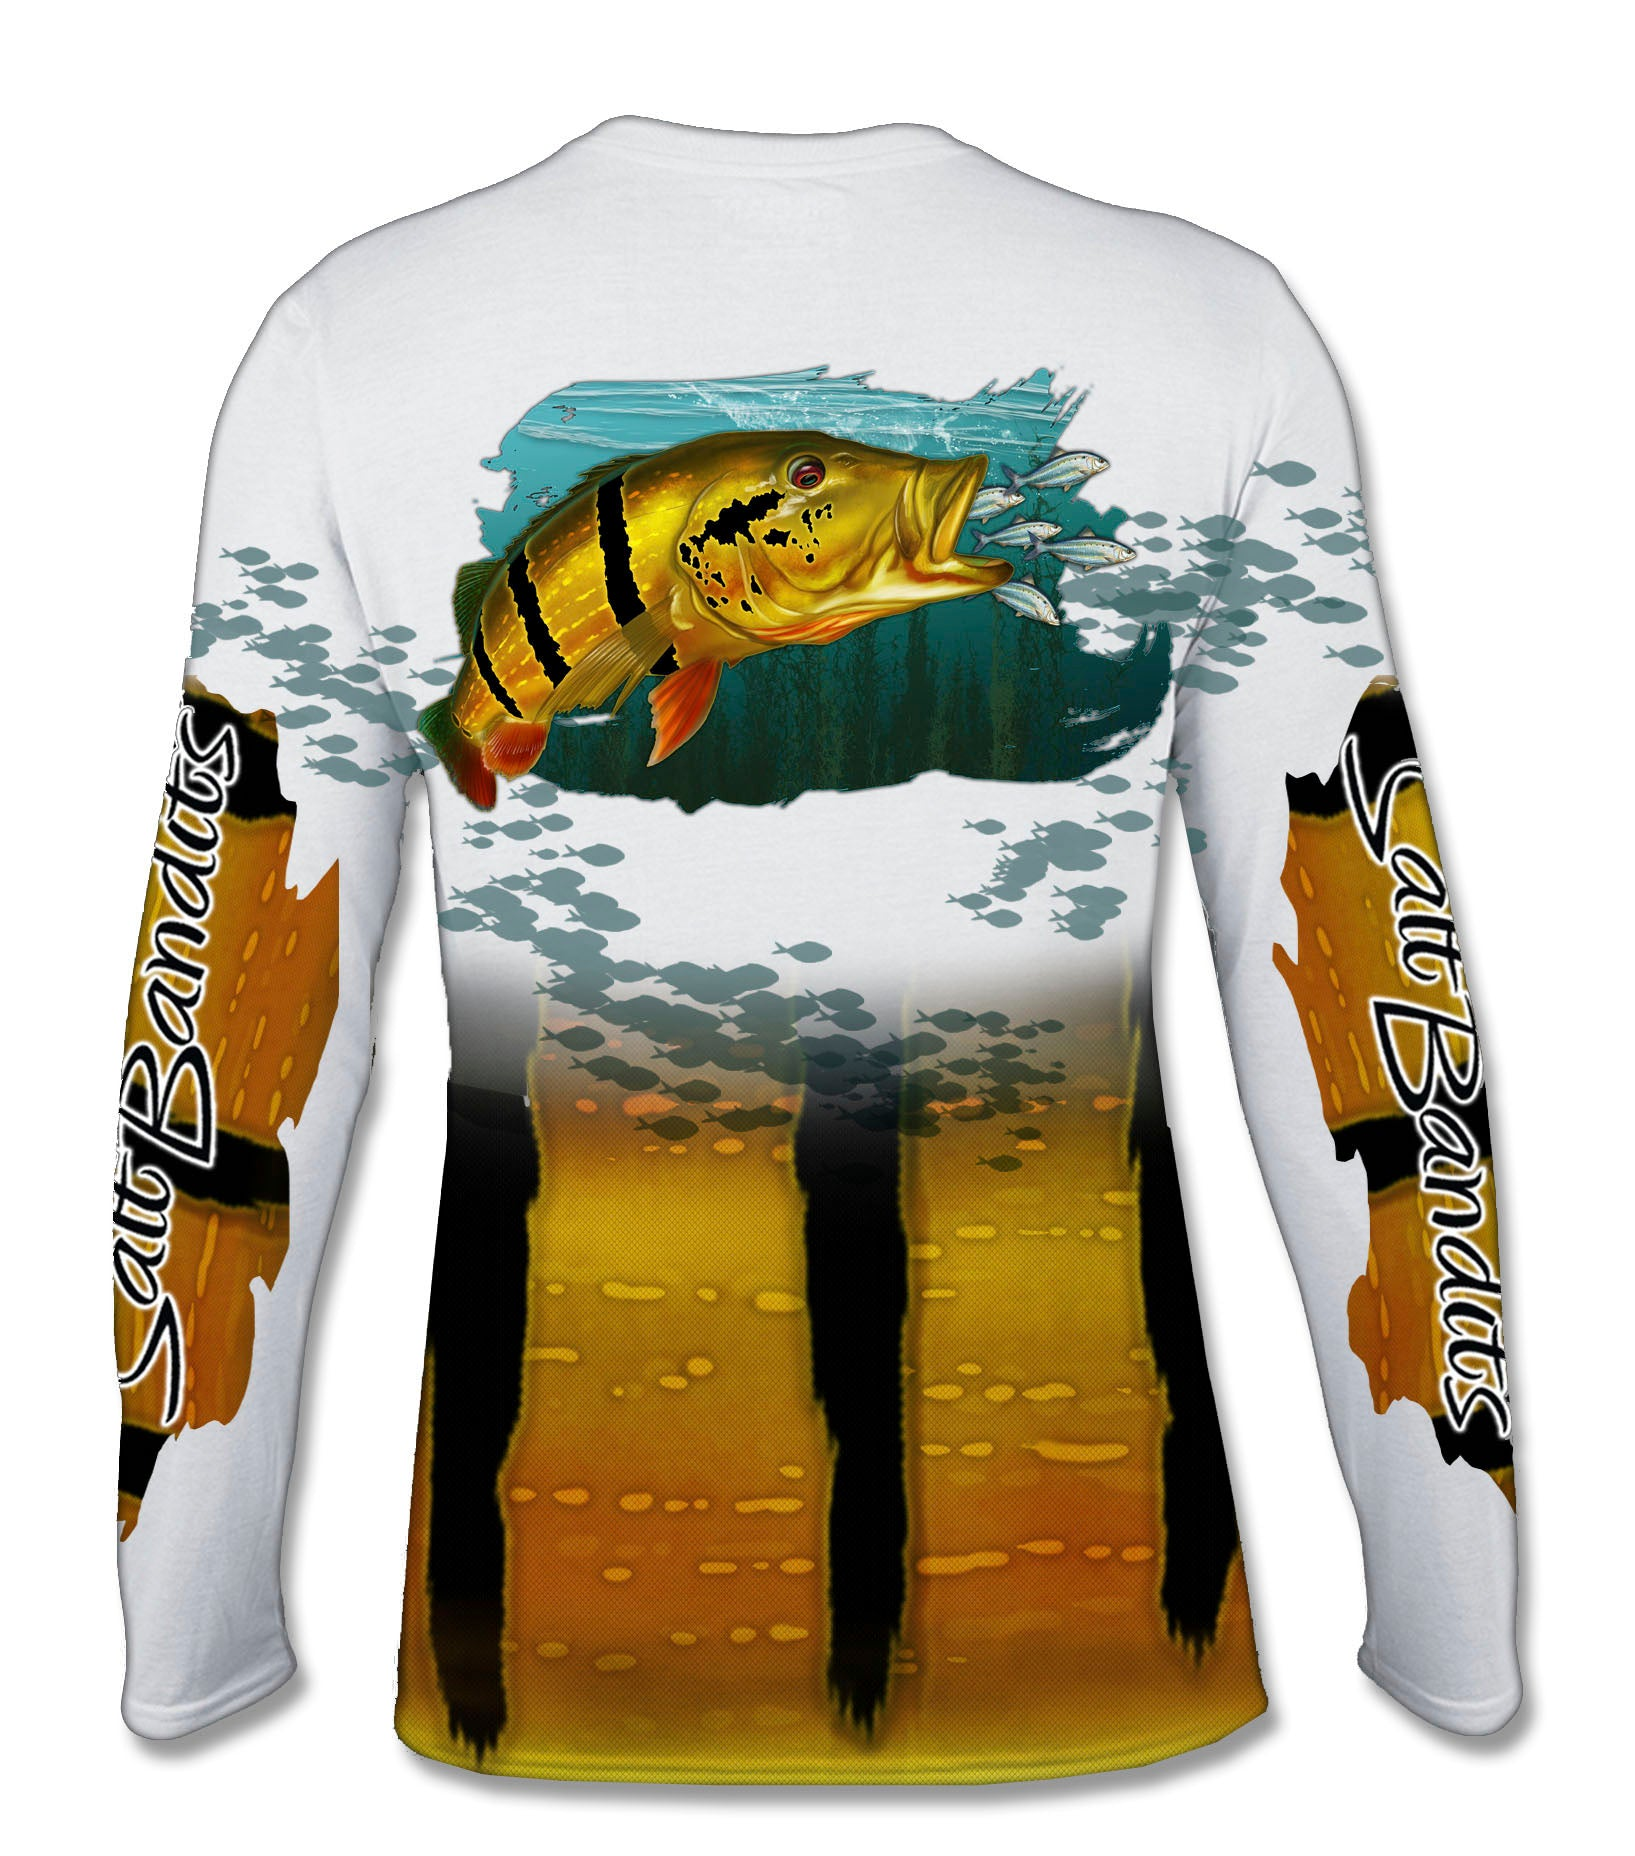 SaltBandits™ Peacock Bass Performance Long Sleeve T-shirt